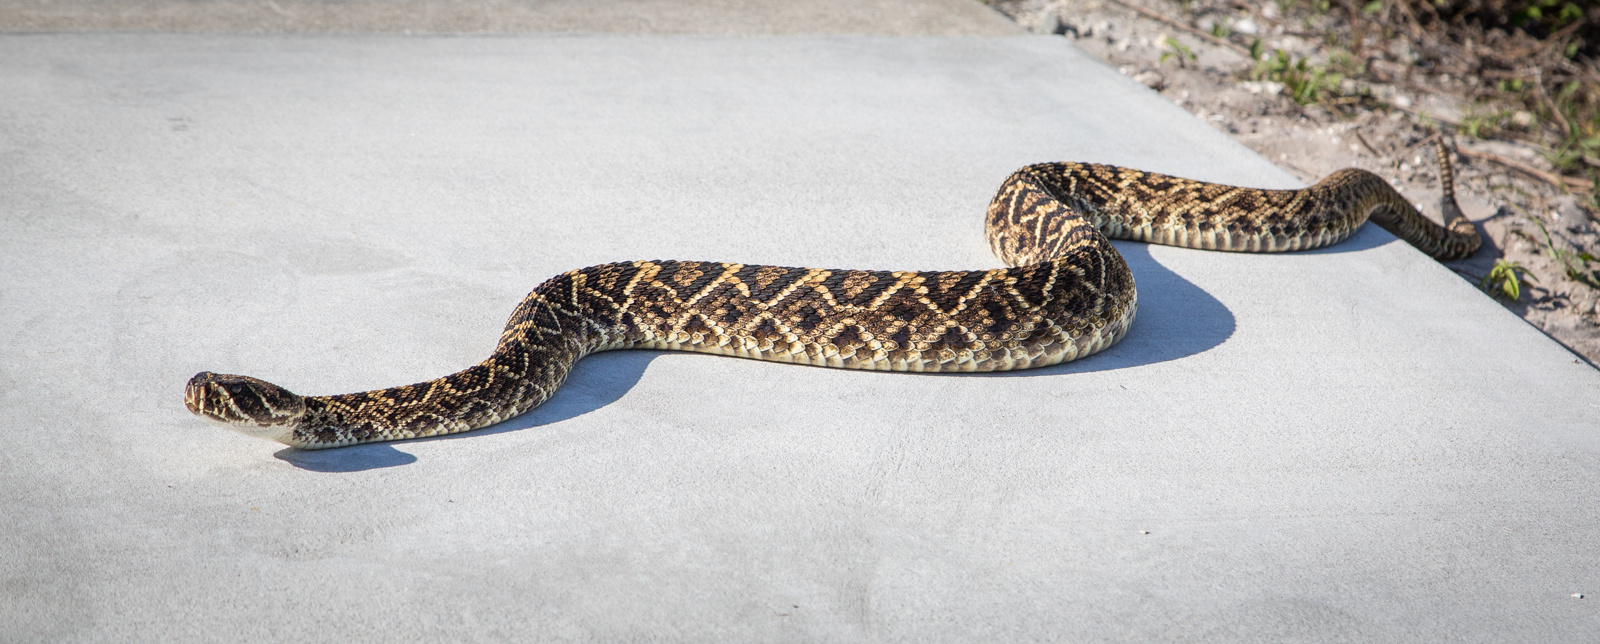 Eastern Diamondback Rattlesnake Backgrounds, Compatible - PC, Mobile, Gadgets| 1600x644 px